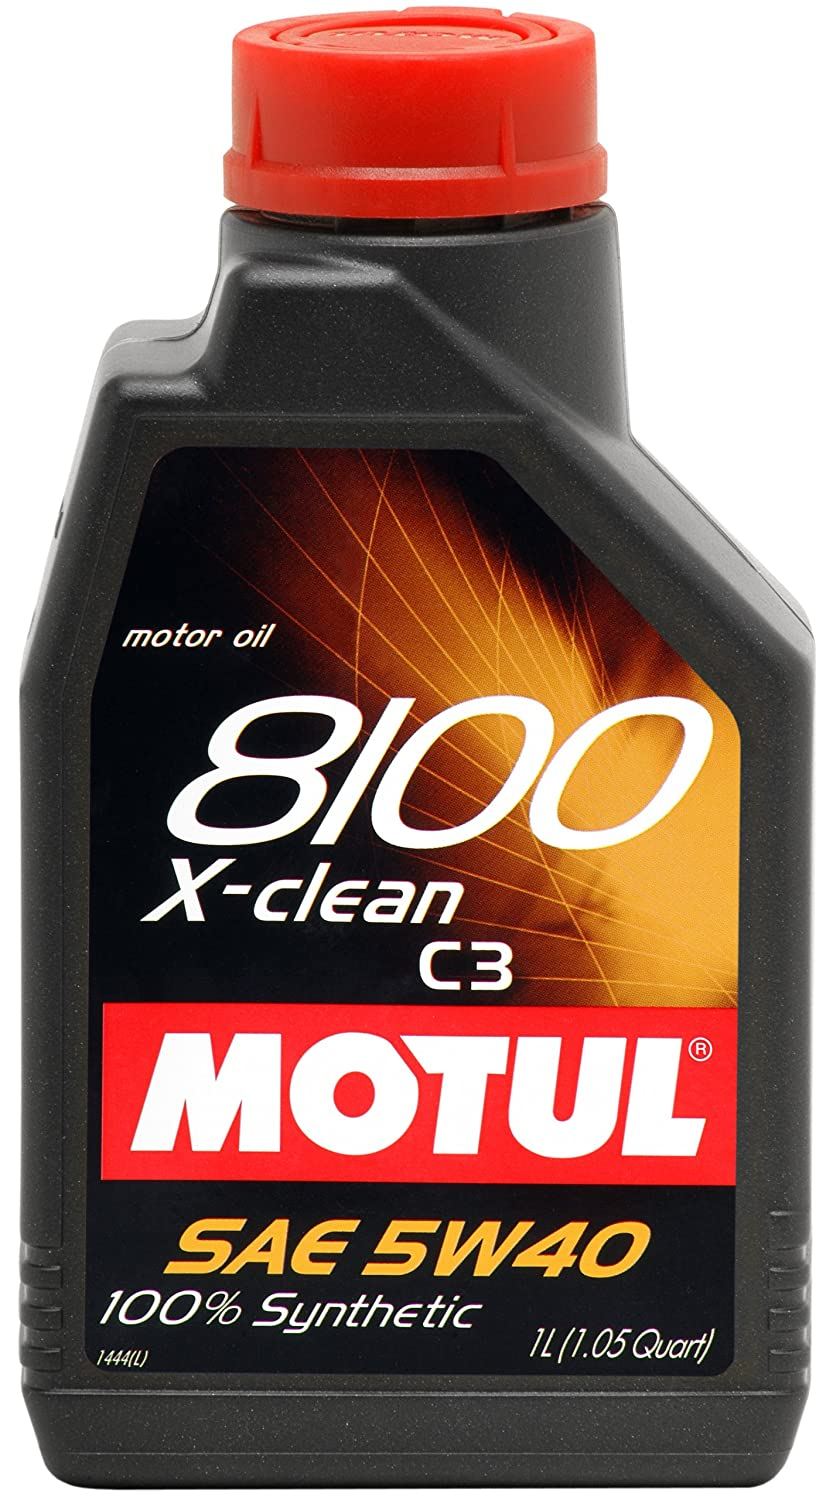 Amazon.com: Motul 841611 8100 X-clean 5W-40 ACEA C3 100 Percent Synthetic Gasoline and Diesel Lubricant for Euro IV Engines - 1 Liter: Automotive